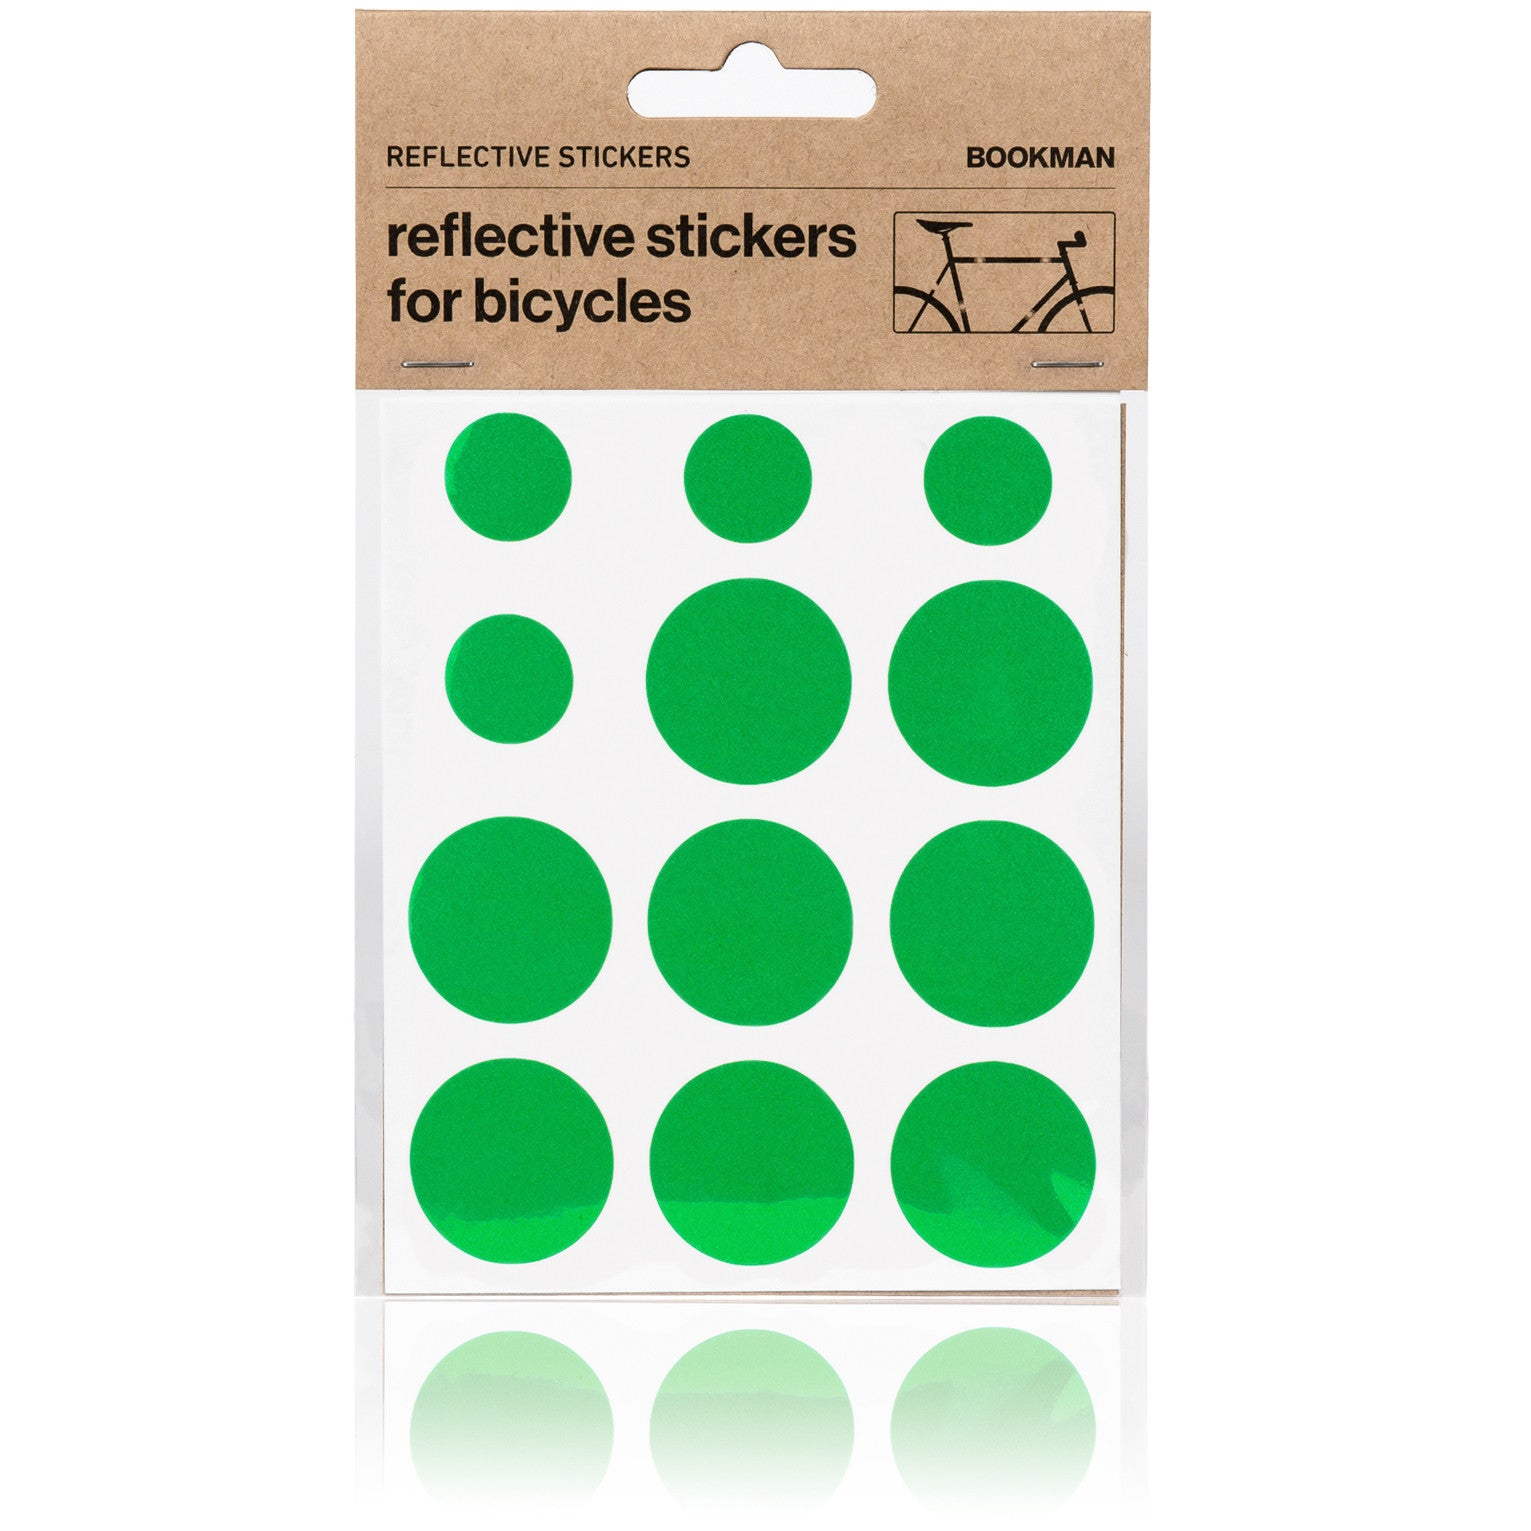 Reflective Dots Stickers for Bikes - Green | BOOKMAN